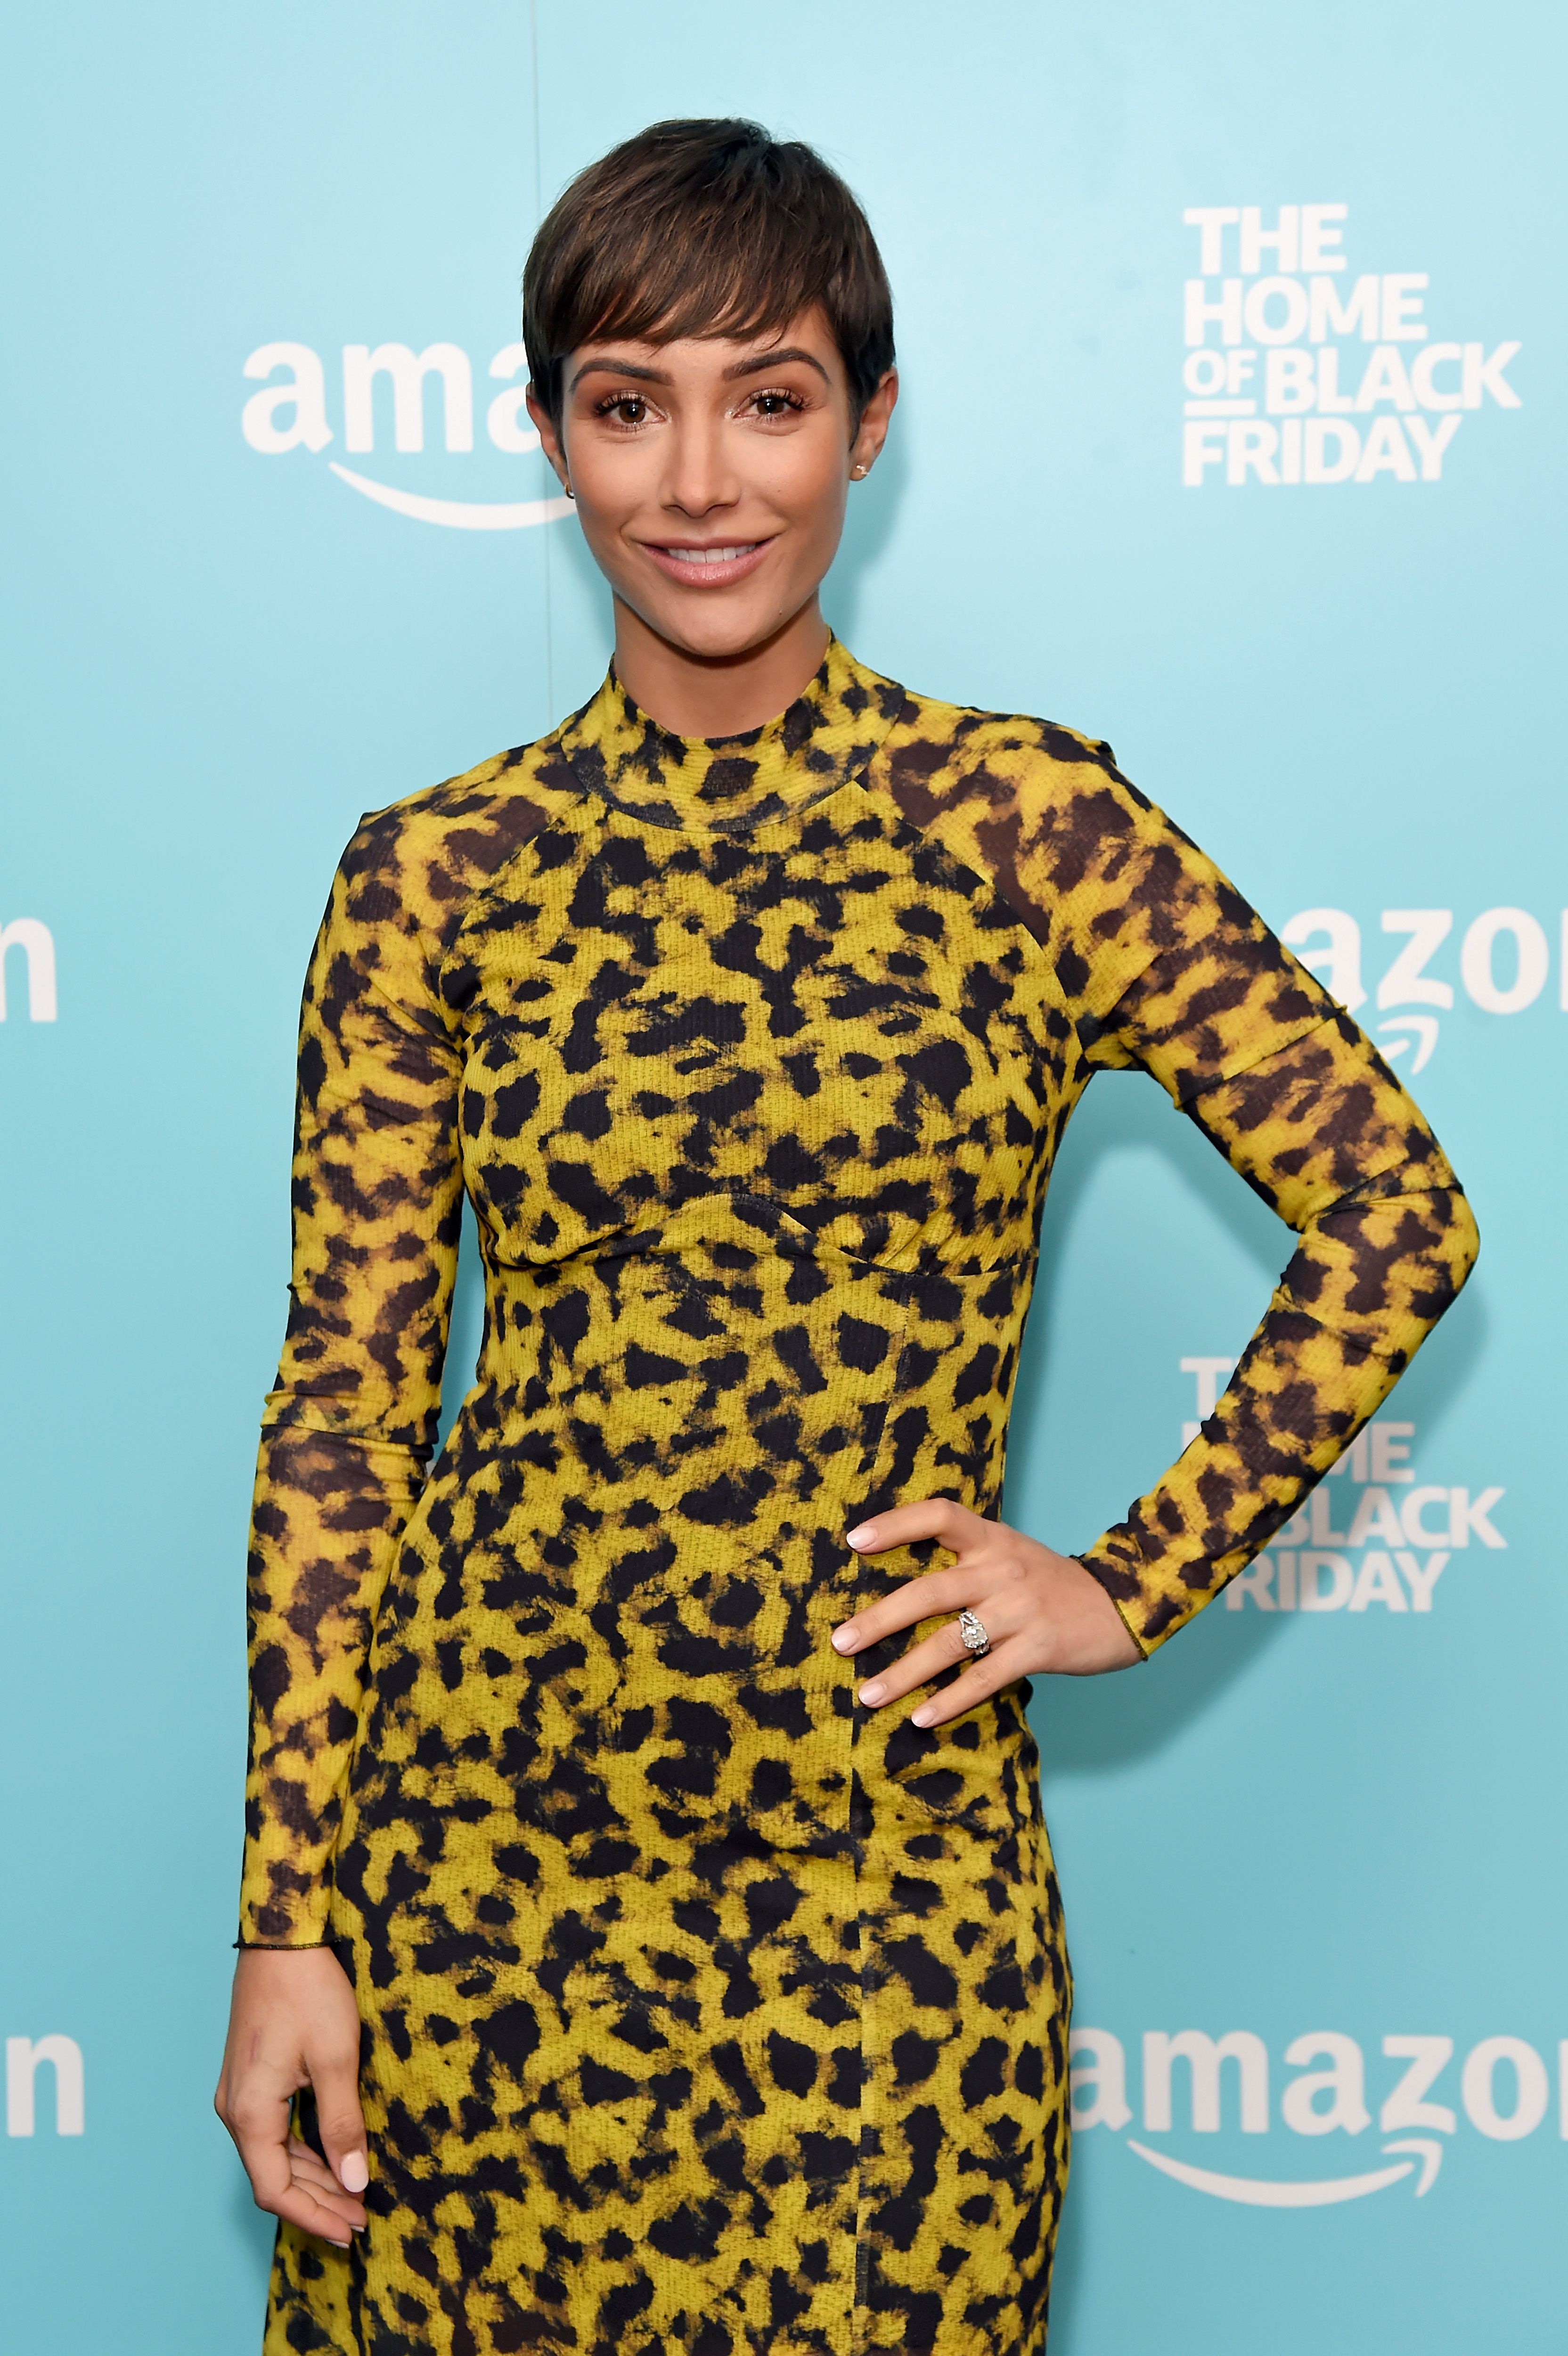 Frankie Bridge Bravely Shares New Details of Her 2011 Stay in a Psychiatric Hospital